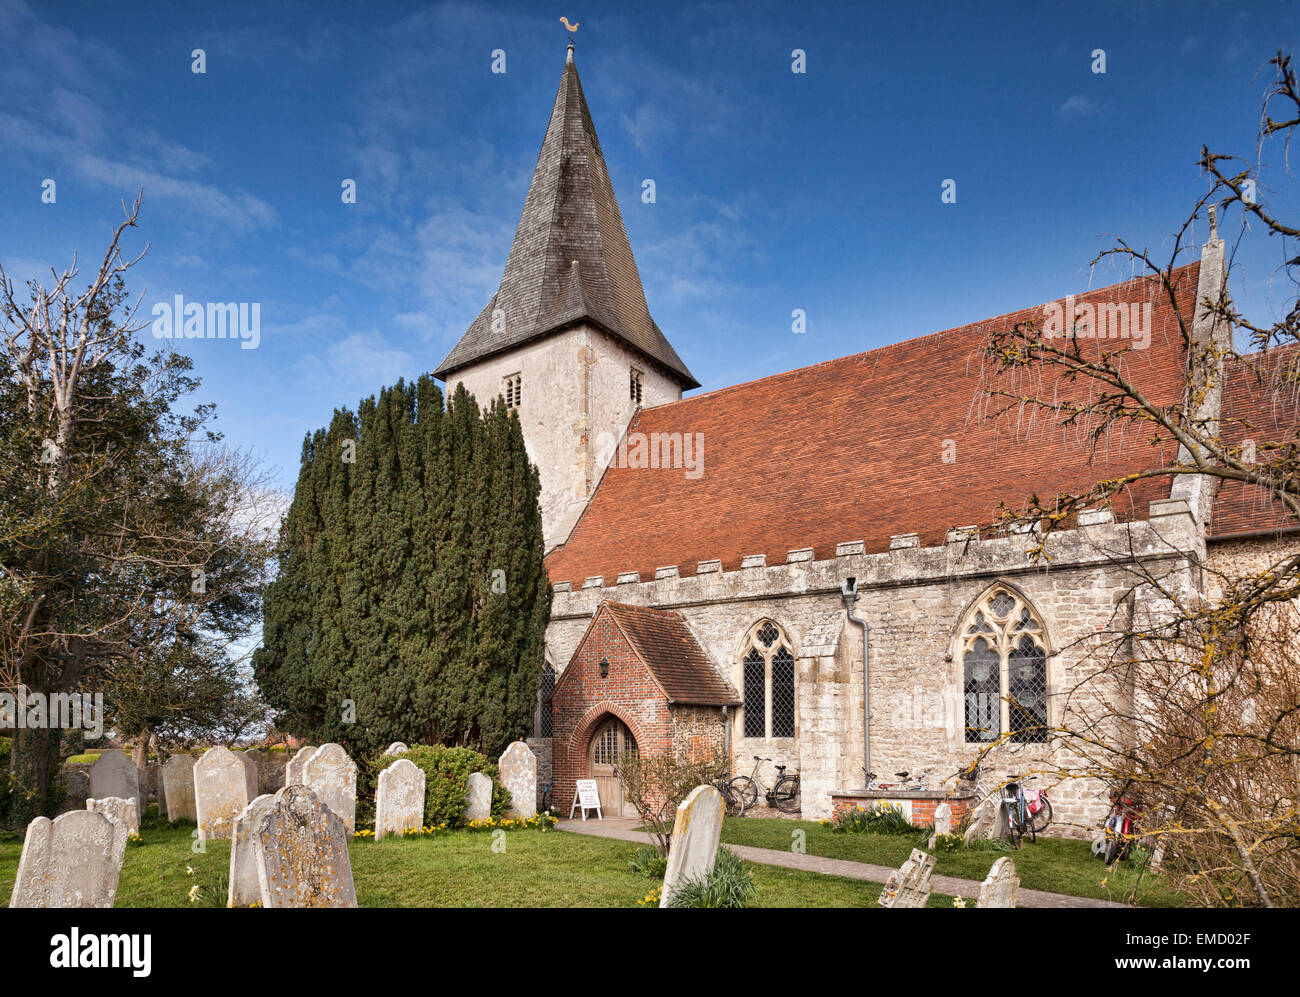 The 14th Century Holy Trinity Church, at Bosham, West Sussex, England - Stock Image